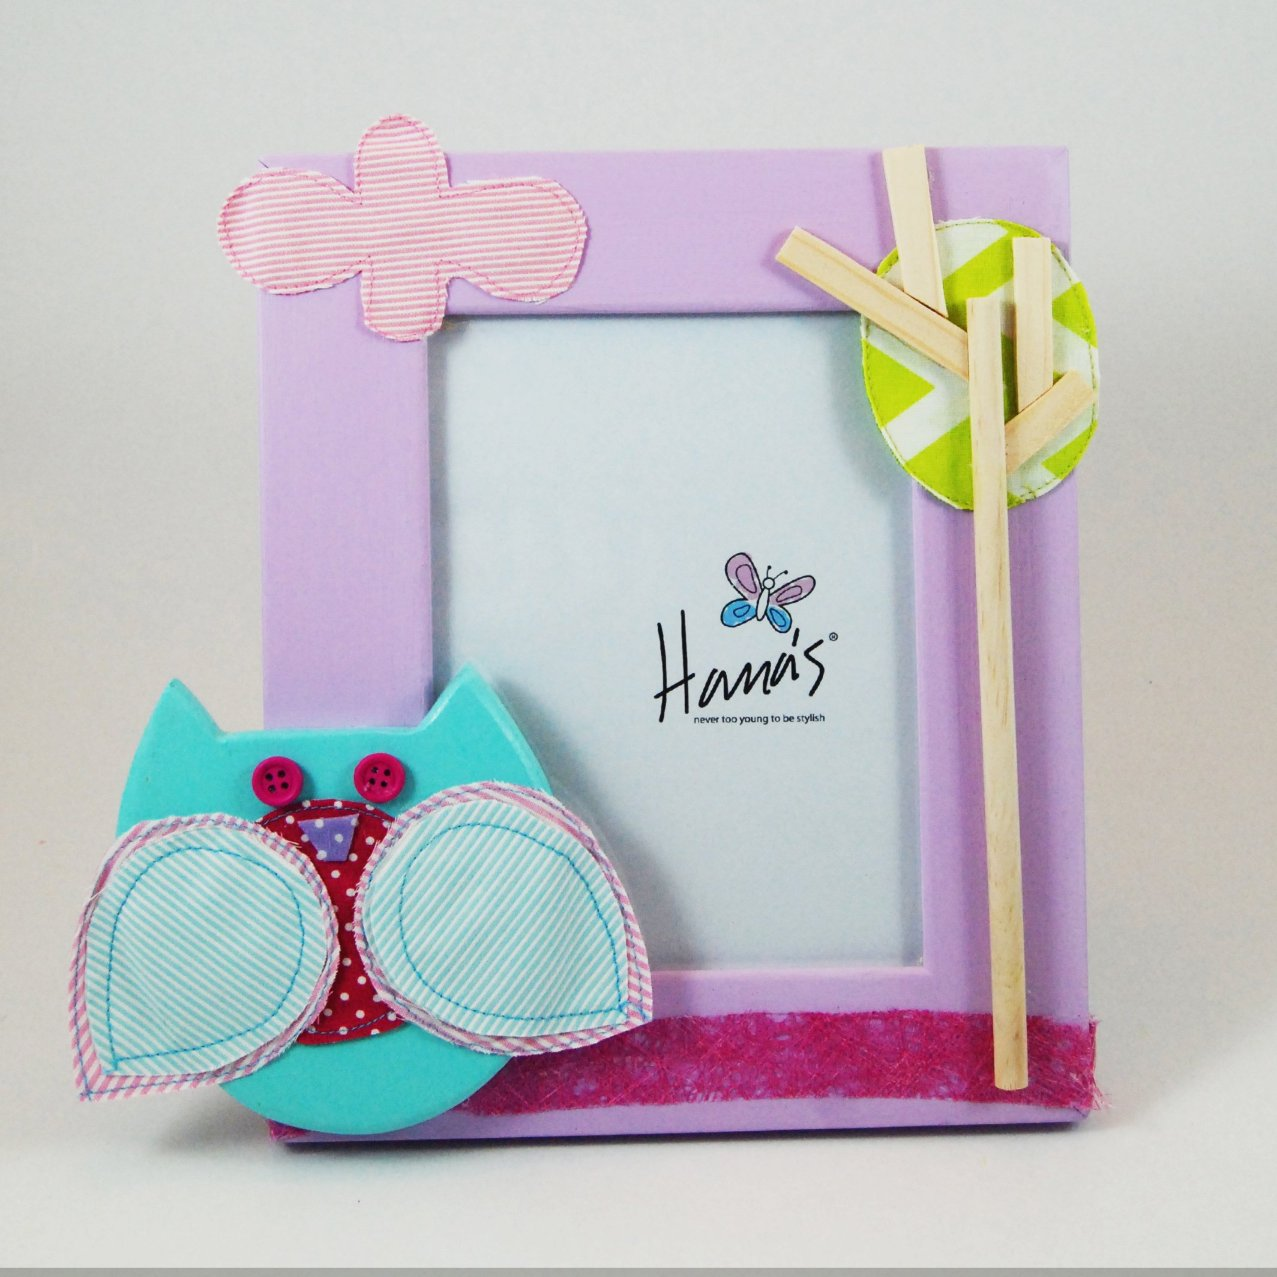 Owl Photo Frame - Kids Room Decor | Toys Gifts | Childrens Interiors | Rooms for Rascals